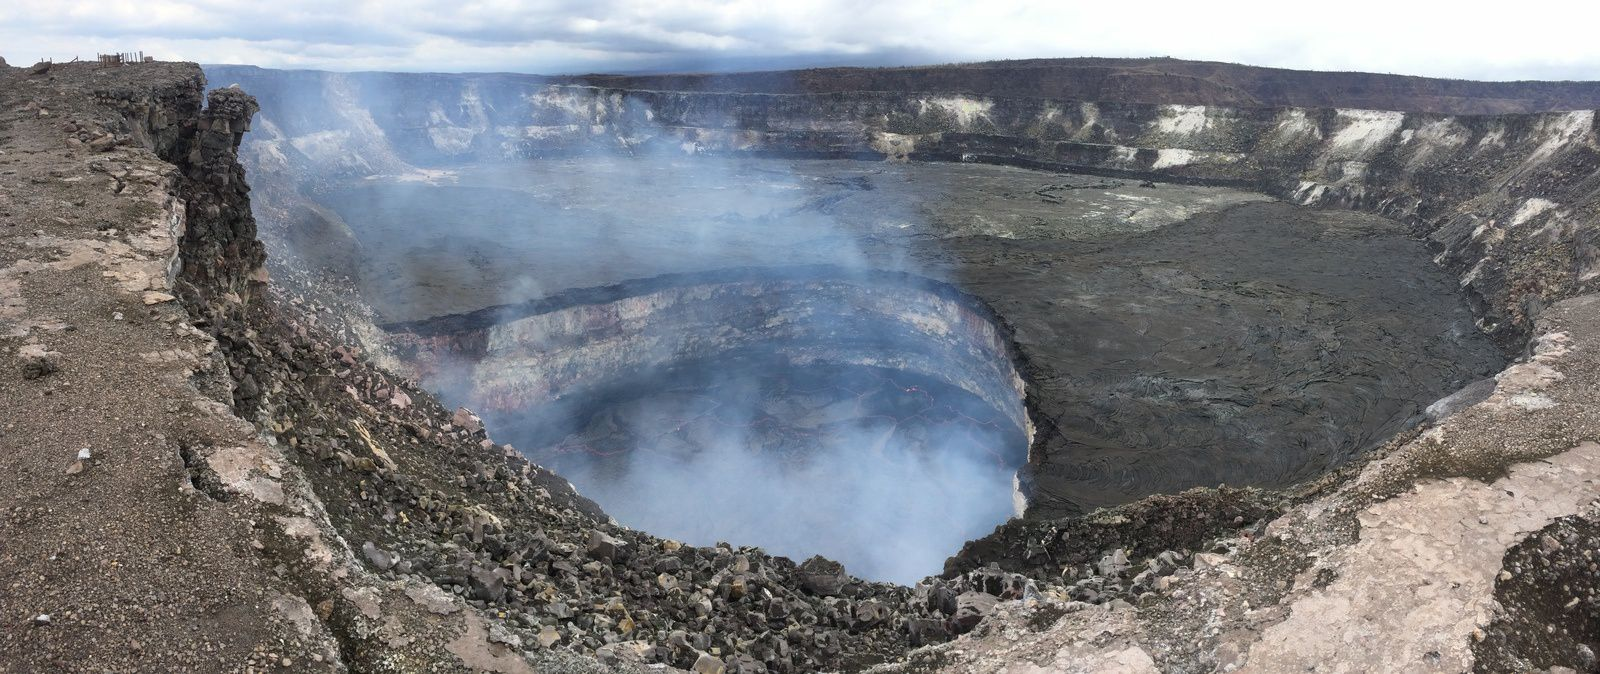 Hawaii / Kilauea - lava lake in Halema'uma'u: above, the Overflow 29/04/2015 - photo below, the level at -60 m. the 09/06/2015; notice the new darker edge of the crater - photos HVO - USGS